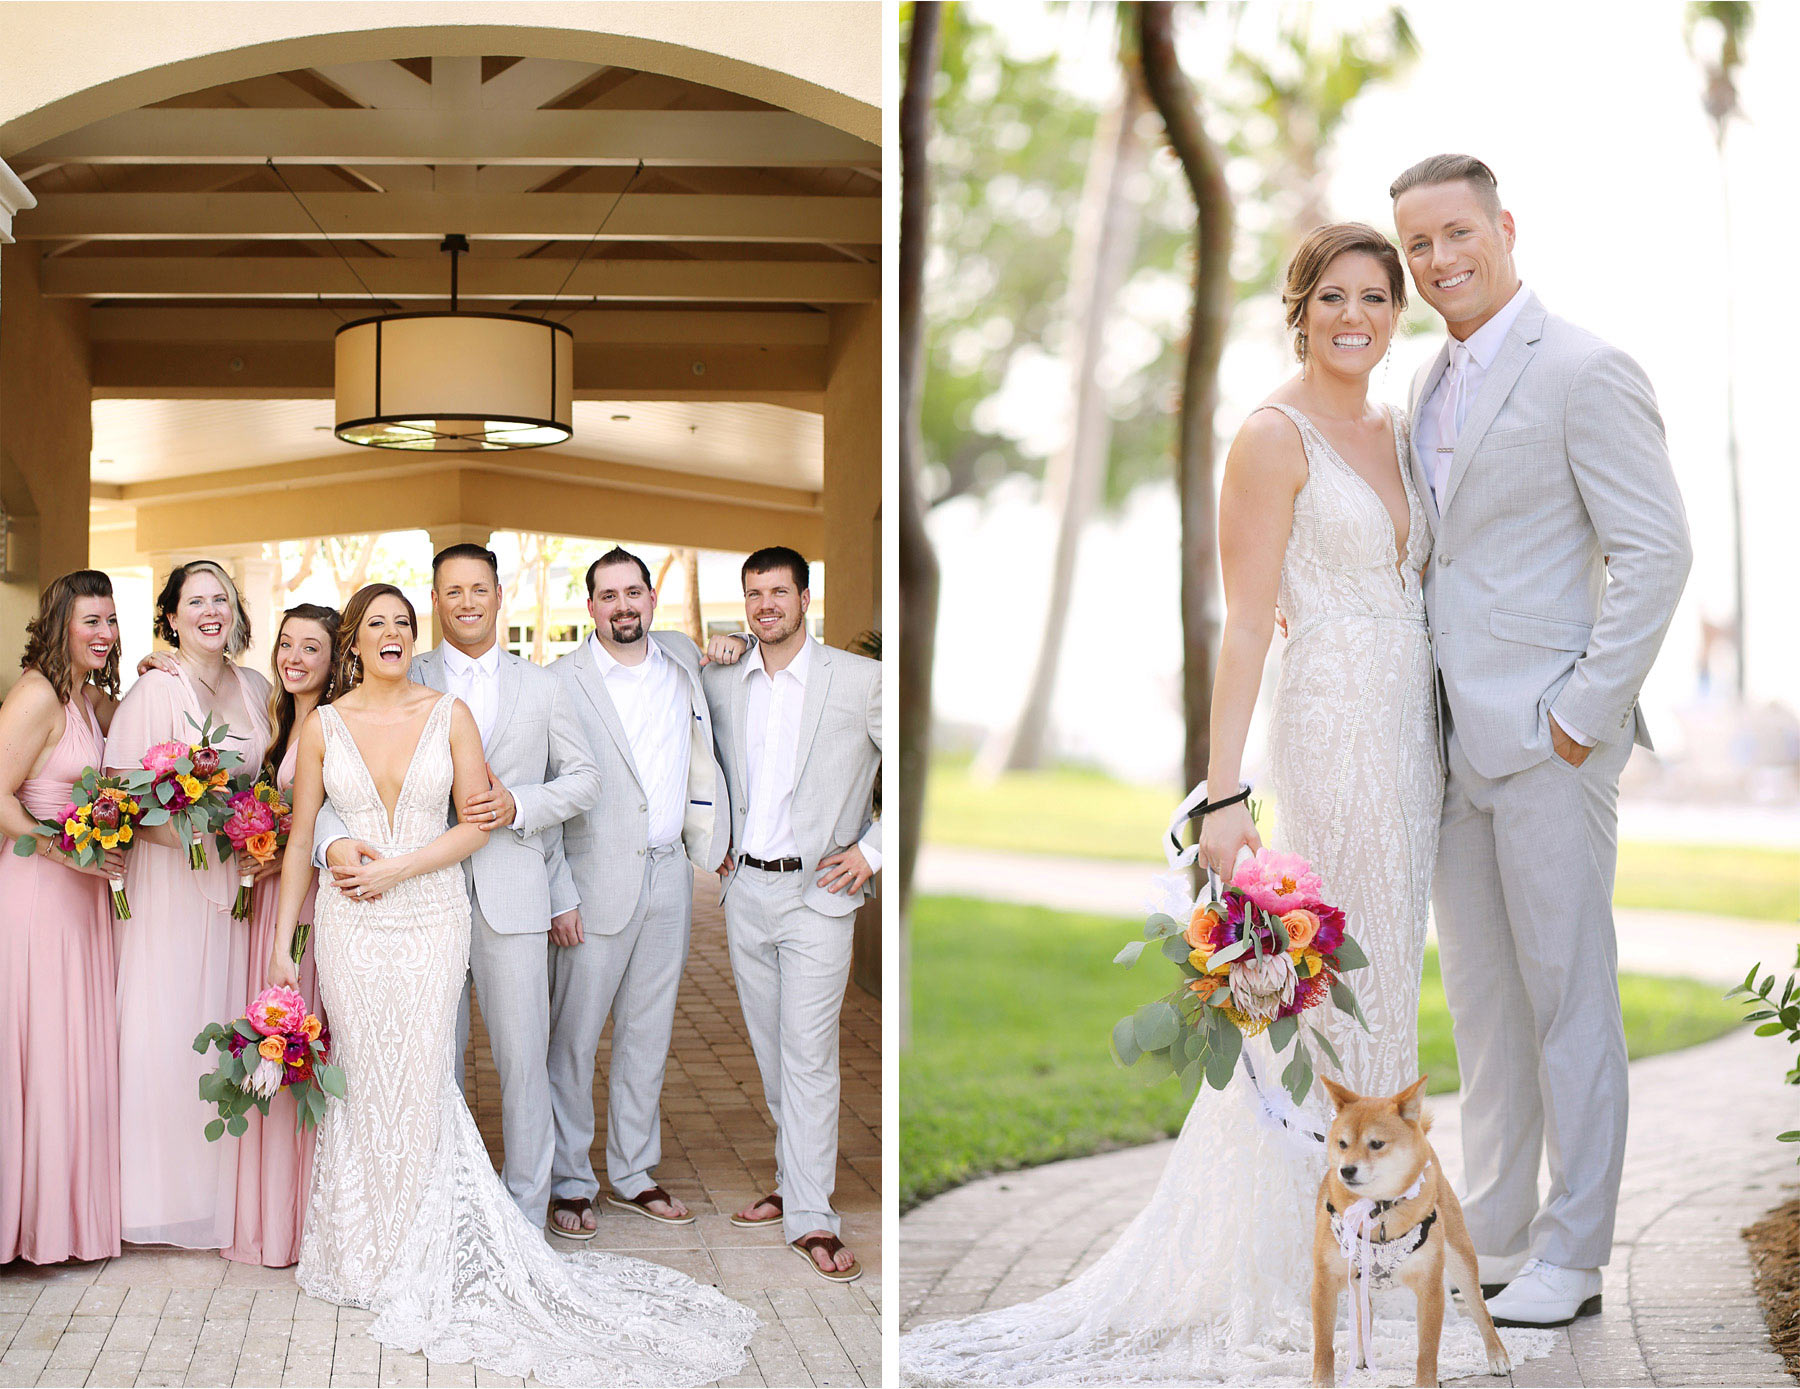 12-Key-Largo-Florida-Keys-Wedding-Photographer-by-Andrew-Vick-Photography-Playa-Largo-Resort-and-Spa-Hotel-Destination-Winter-Bride-Groom-Bridesmaids-Groomsmen-Bridal-Party-Dog-Flowers-Carrie-and-Brian.jpg